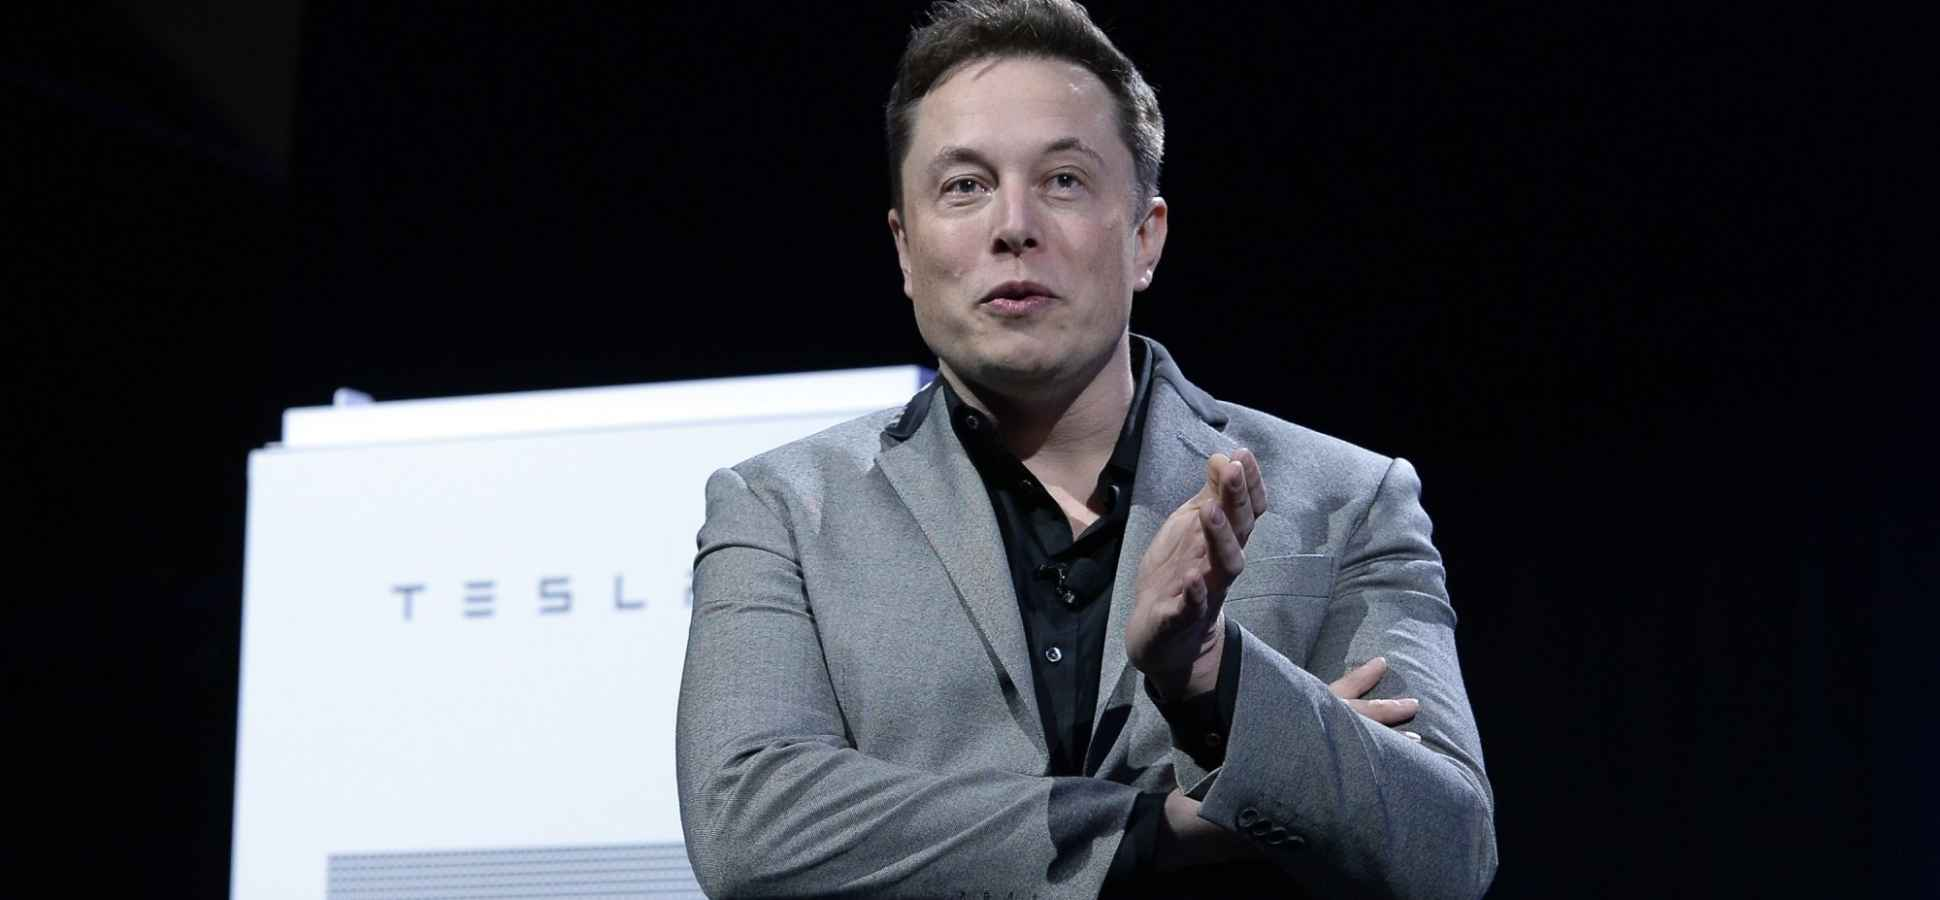 In Just 1 Tweet Elon Musk Captured the Brutal Truth About Life as an Entrepreneur